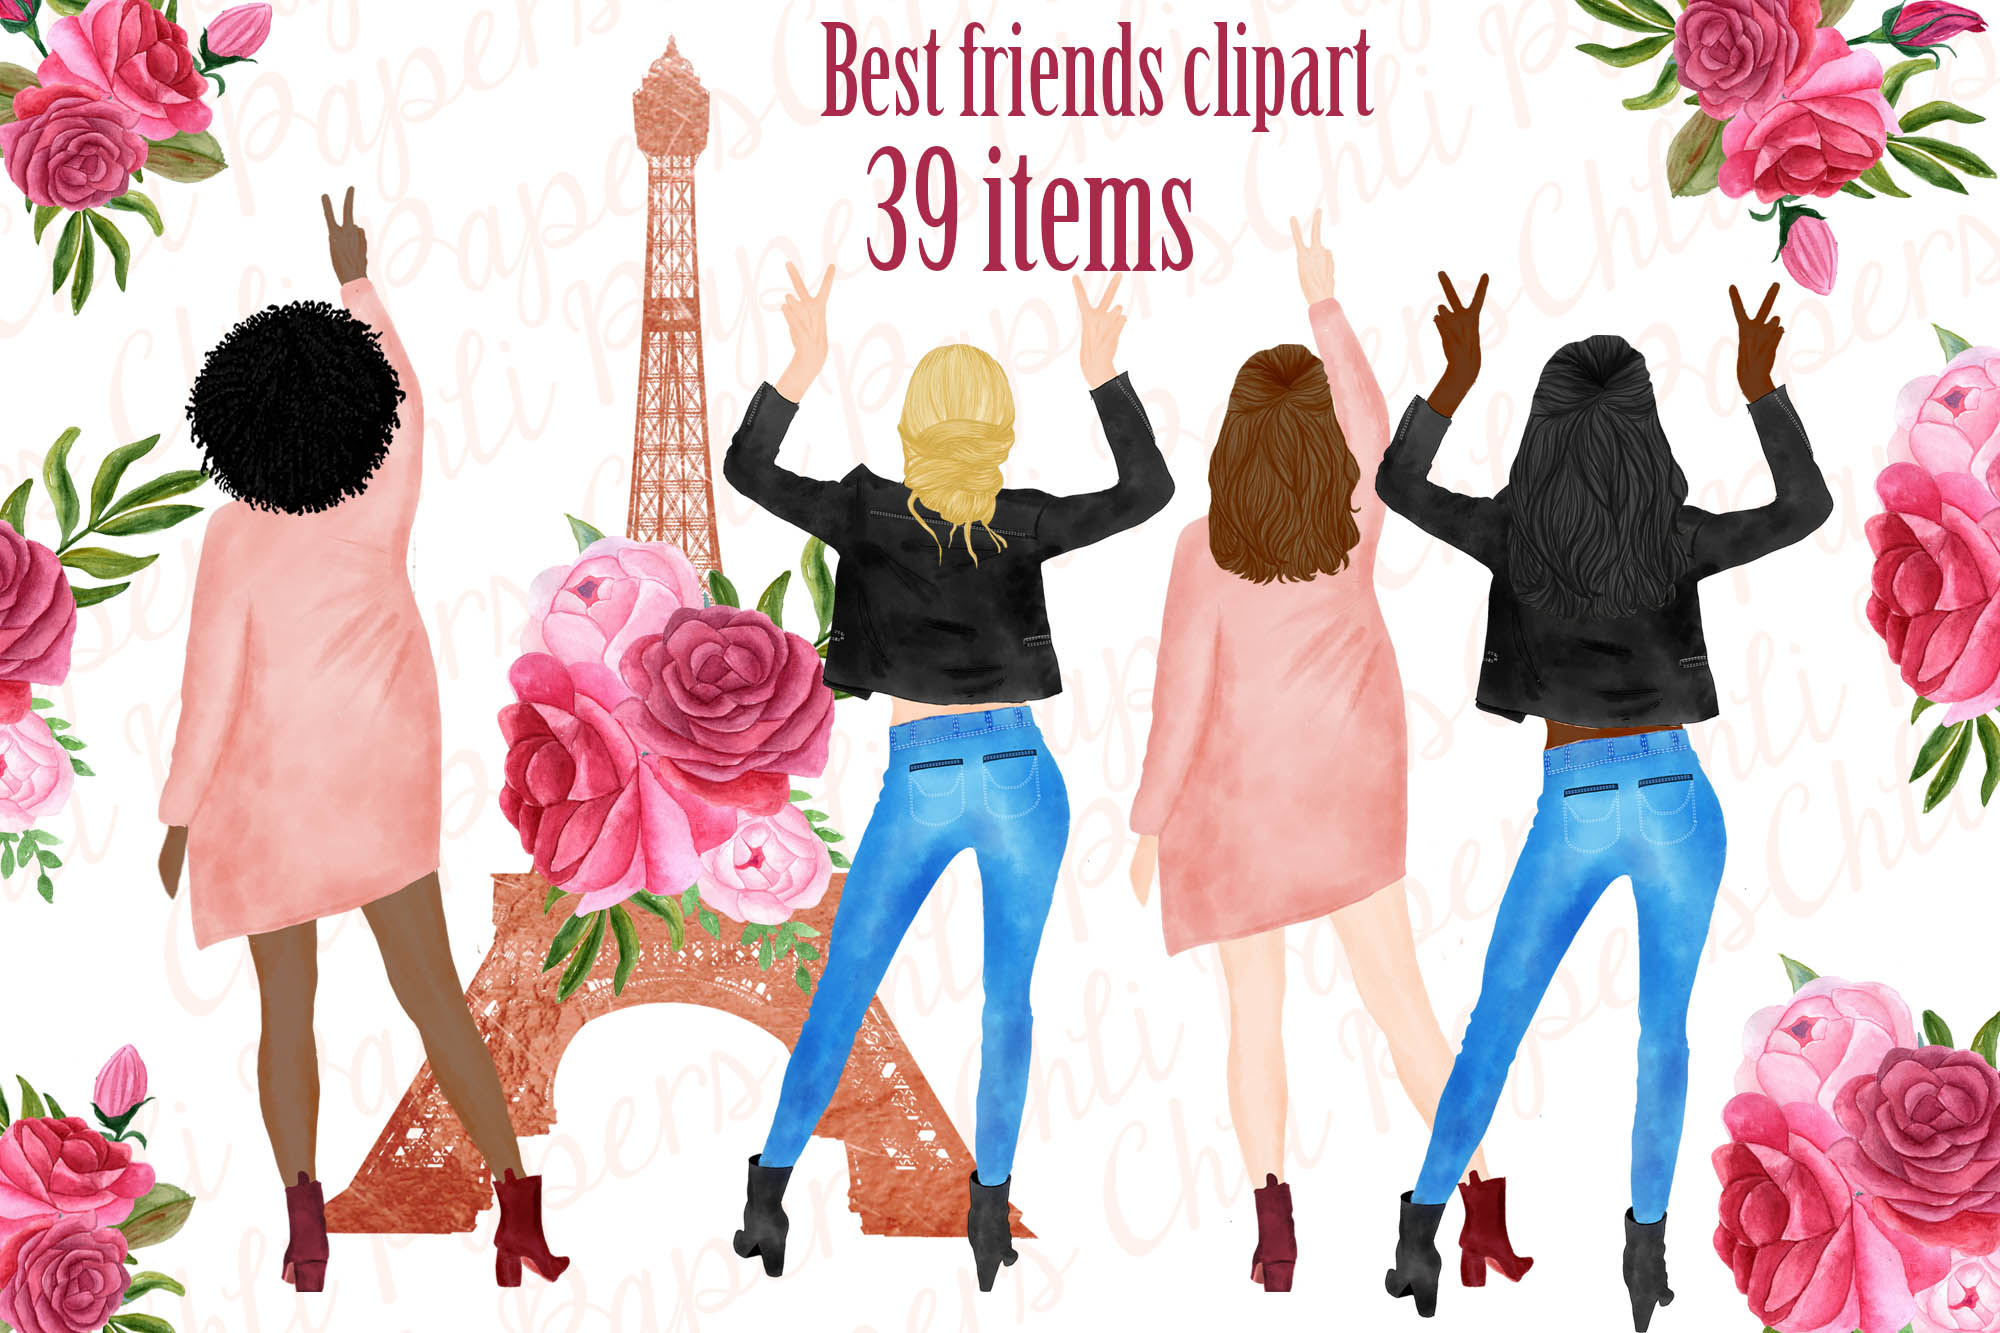 Best Friends Clipart, Paris clipart, Eiffel Tower clipart example image 1